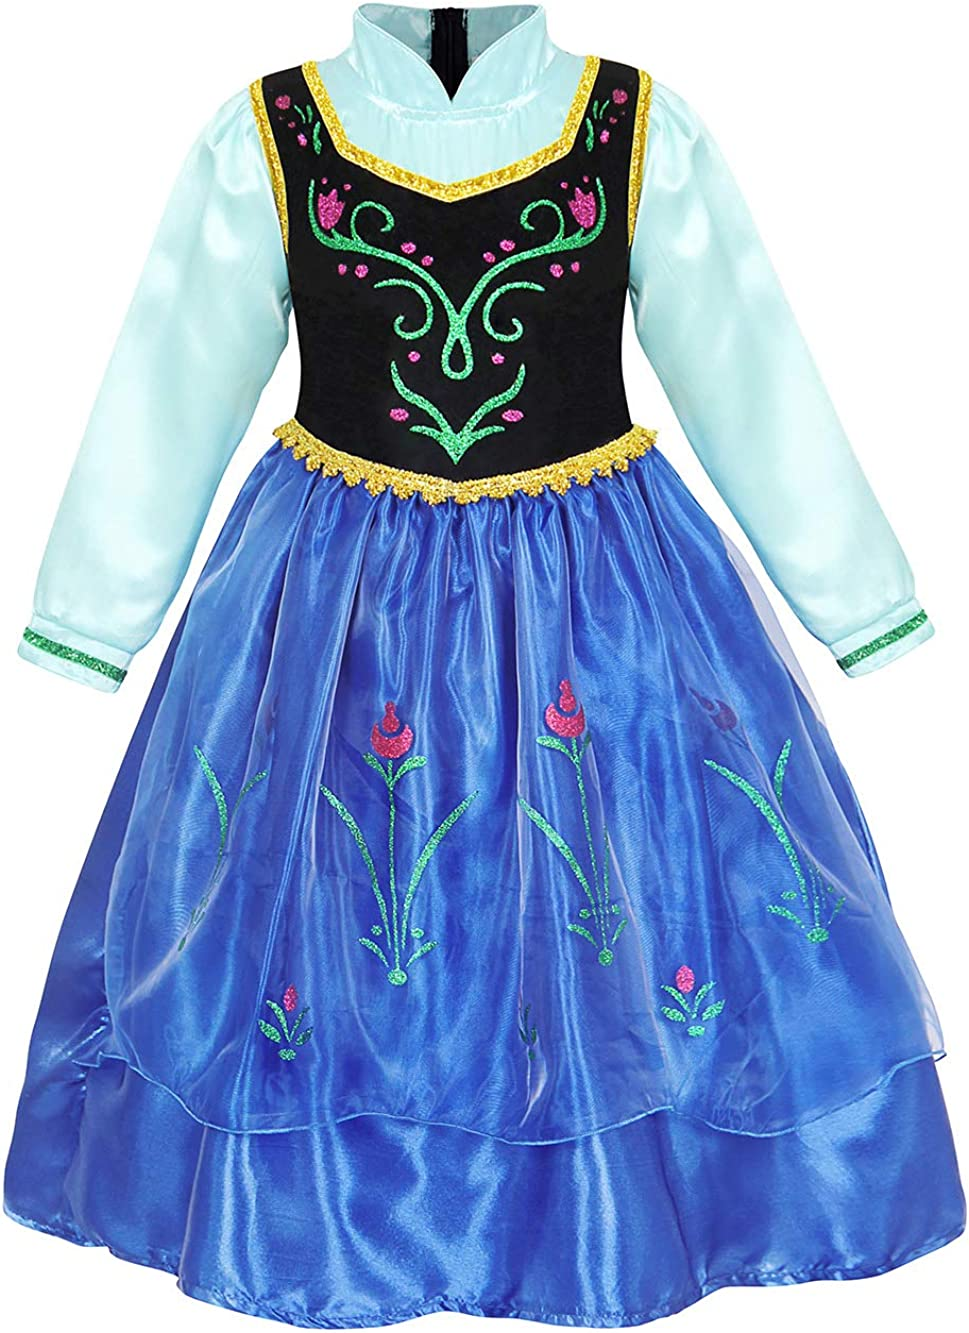 AmzBarley Girls Princess Birthday Theme Party Outfits Halloween Costume Cosplay Dress Up Role Play Clothes with Rose Cape